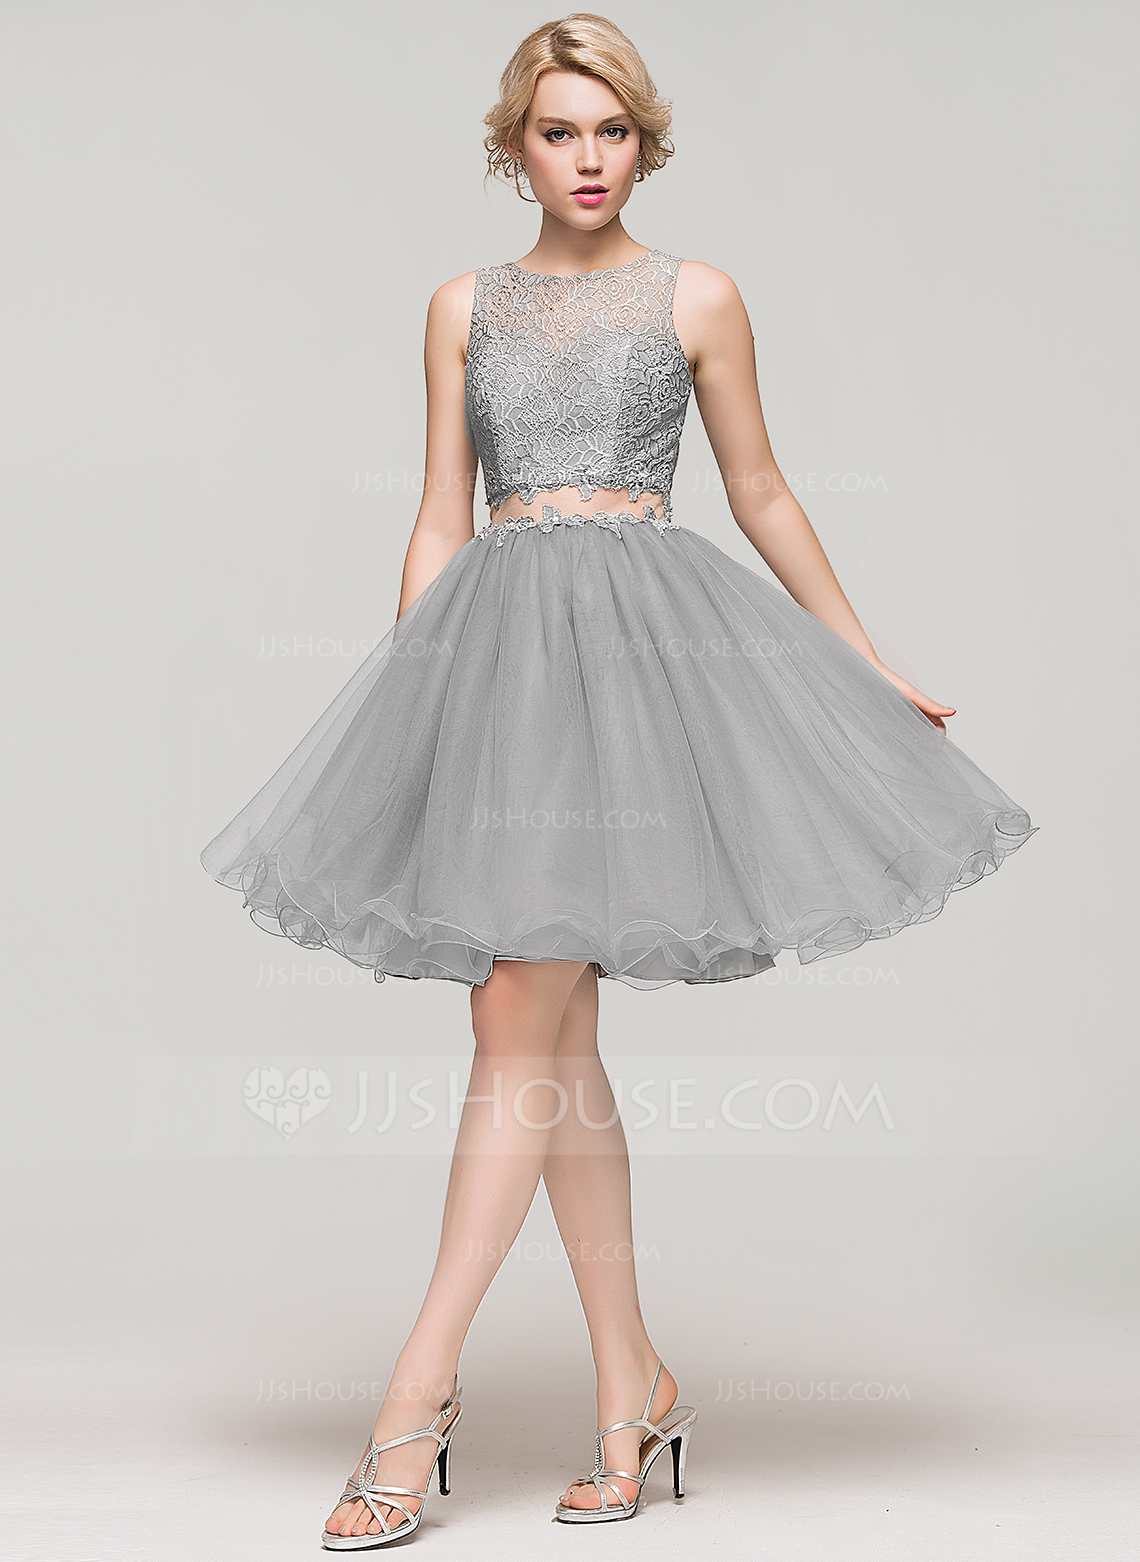 Tulle Dresses a-line/princess scoop neck knee-length tulle lace homecoming dress with  beading. loading zoom XHGQPLX